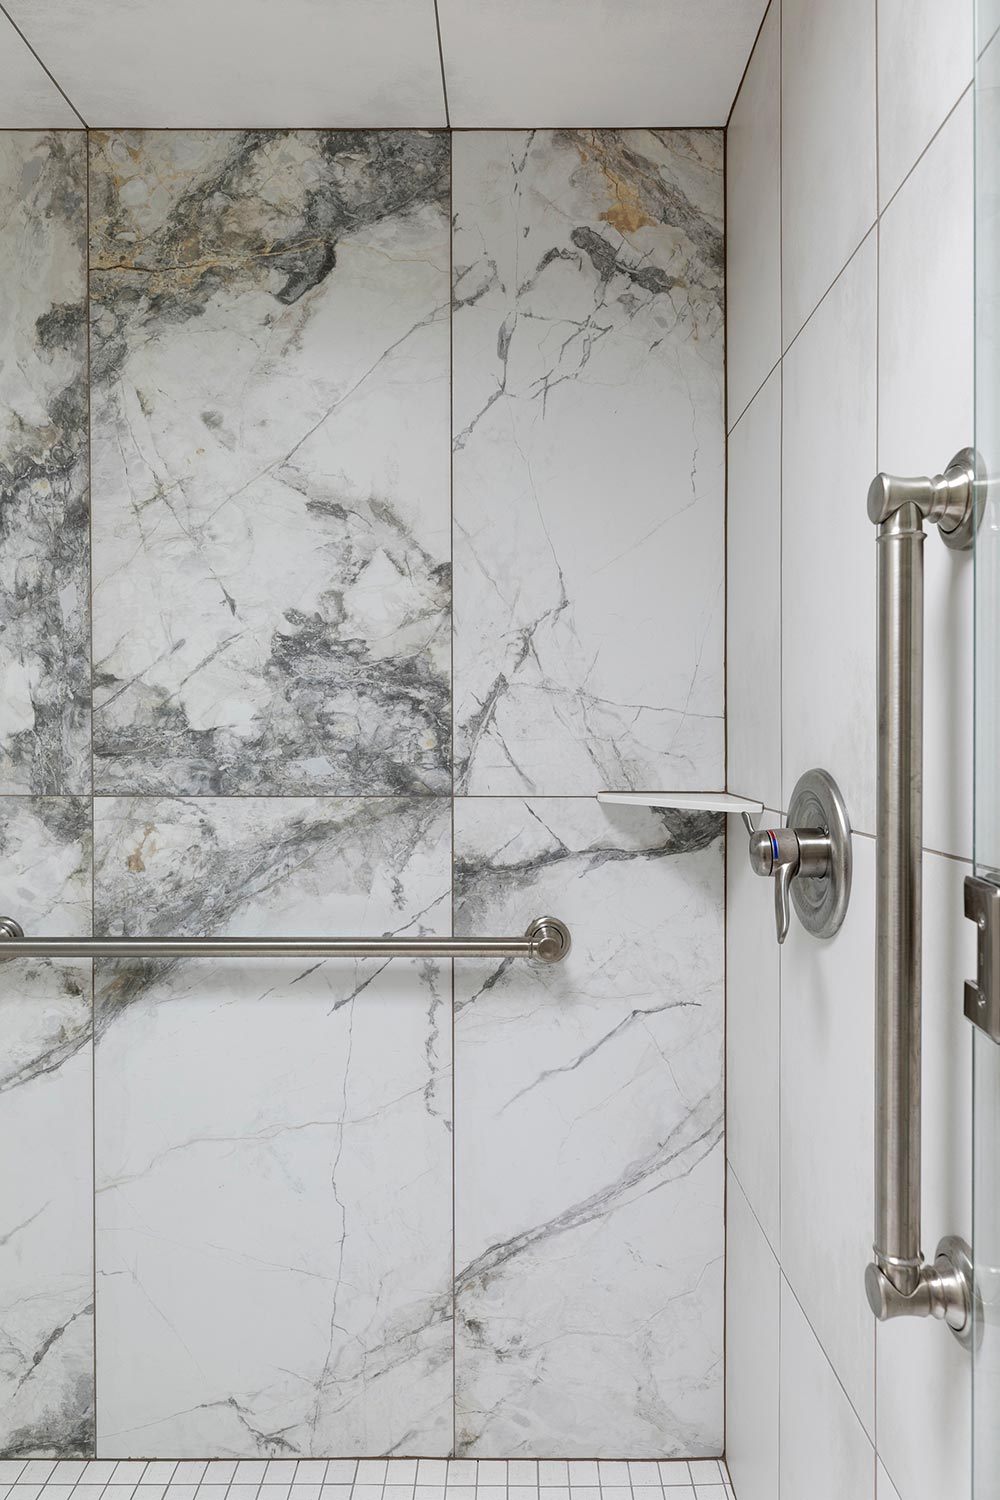 Tiled focal wall in accessible design shower with grab bars